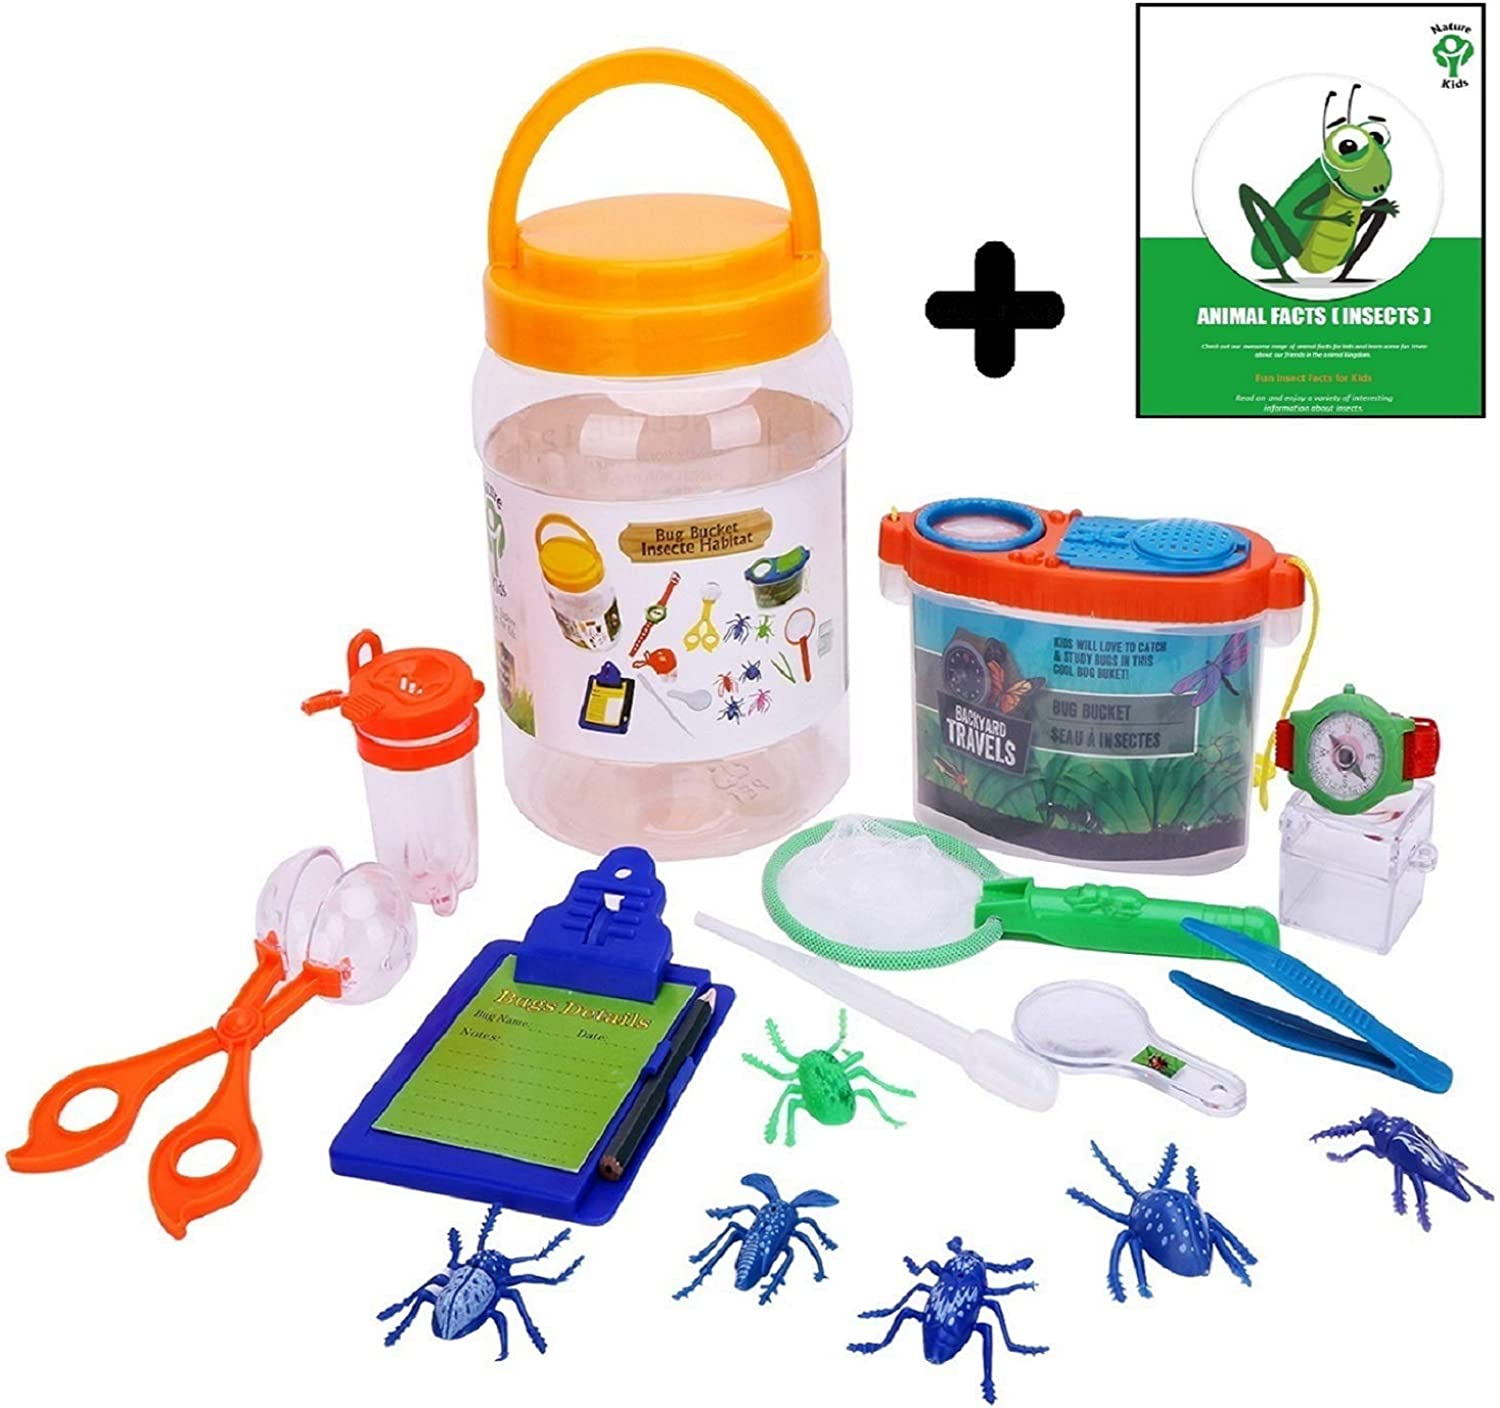 """Kids Bug Explorer Toy Set with Catch Critter Net Tongs Tweezers Magnifier & More a """" Educations Imaginative & Creative Toys for Boys & Girls Camping Scouting Nature & Backyard Fun + Free Ebook."""